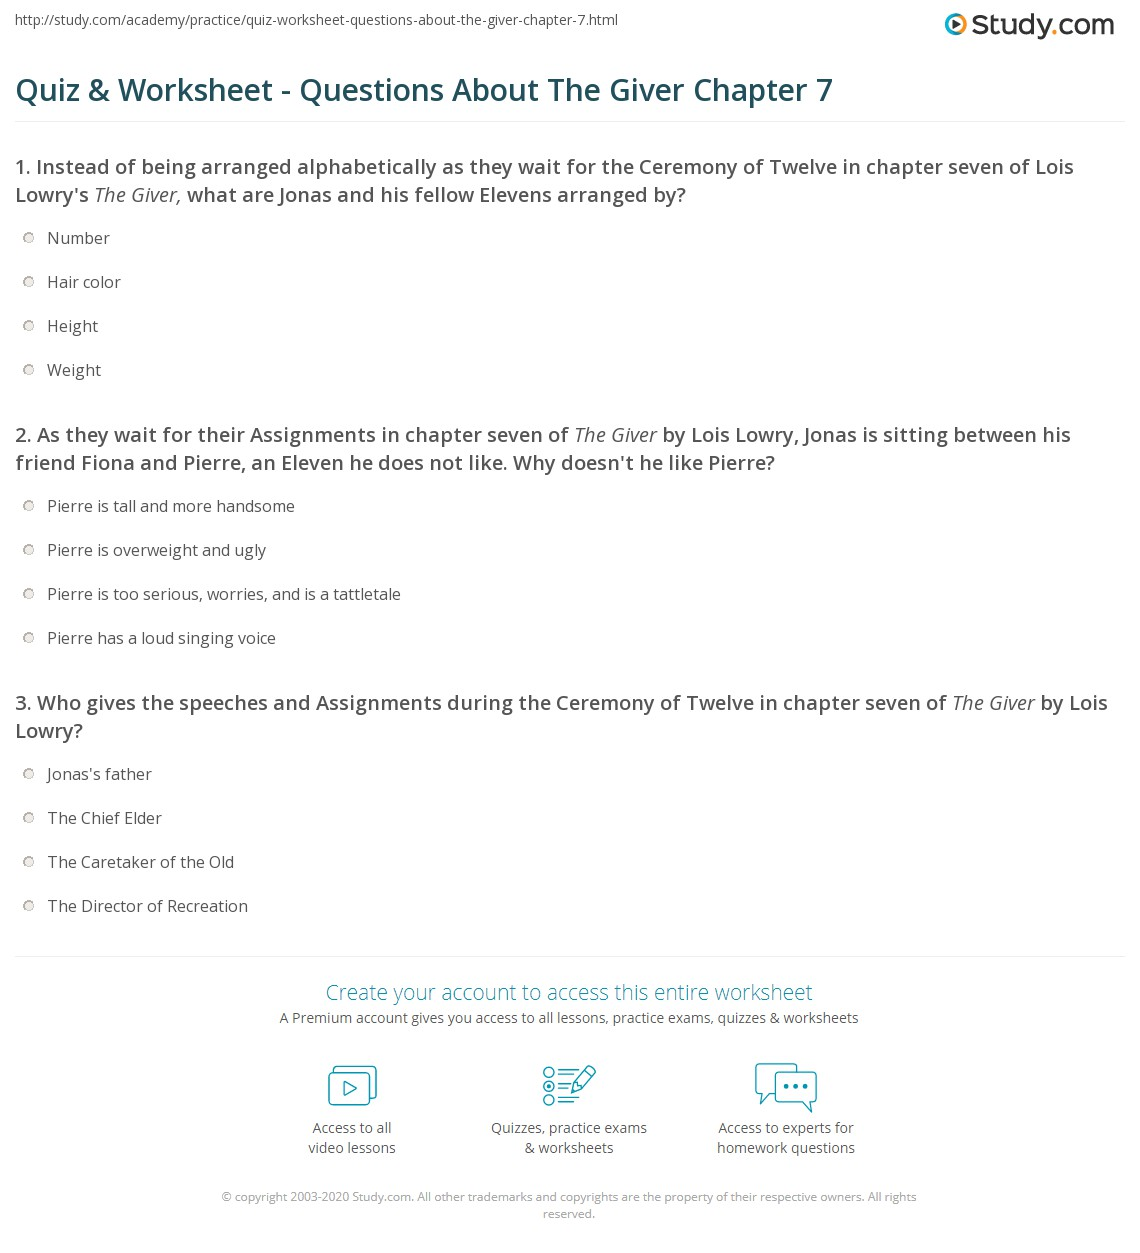 quiz worksheet questions about the giver chapter com as they wait for their assignments in chapter seven of the giver by lois lowry jonas is sitting between his friend fiona and pierre an eleven he does not